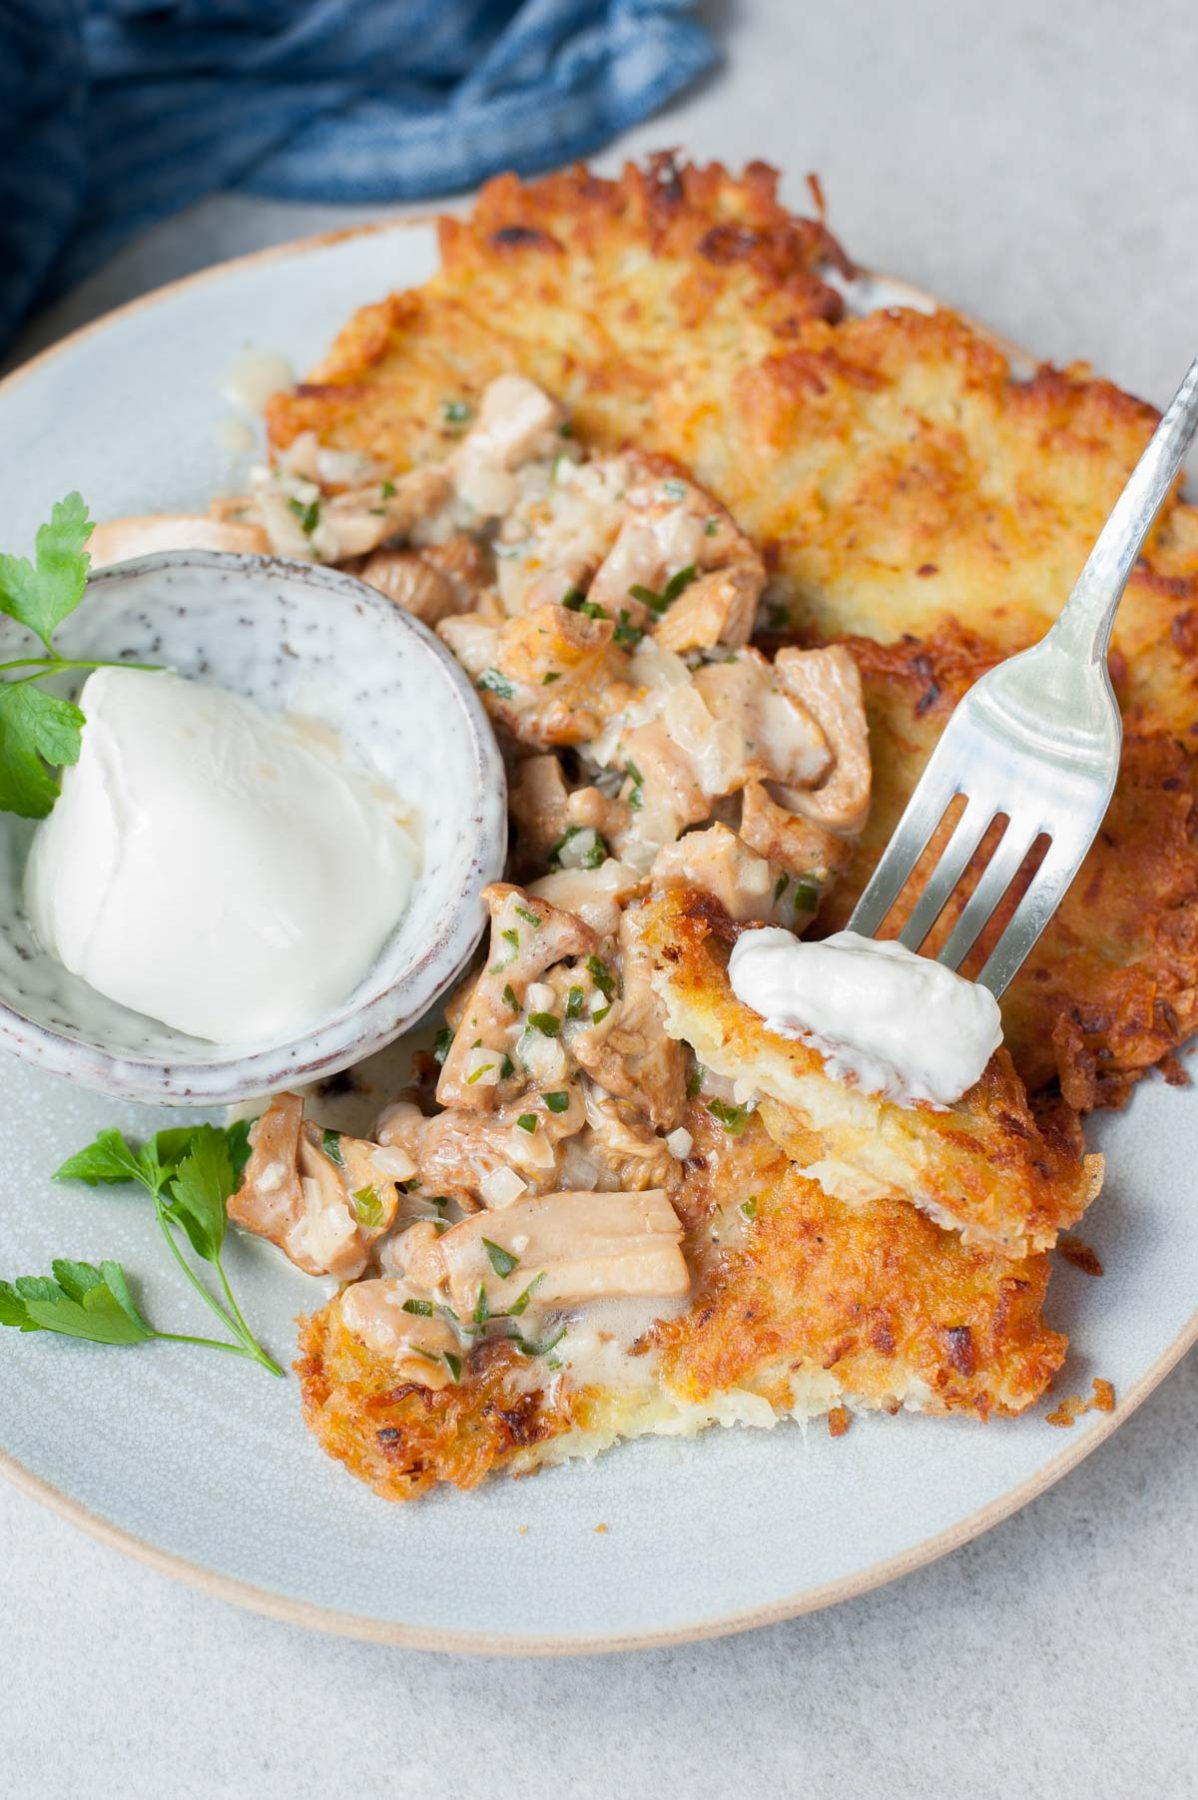 potato pancakes with chanterelle sauce and sour cream sticked on a fork